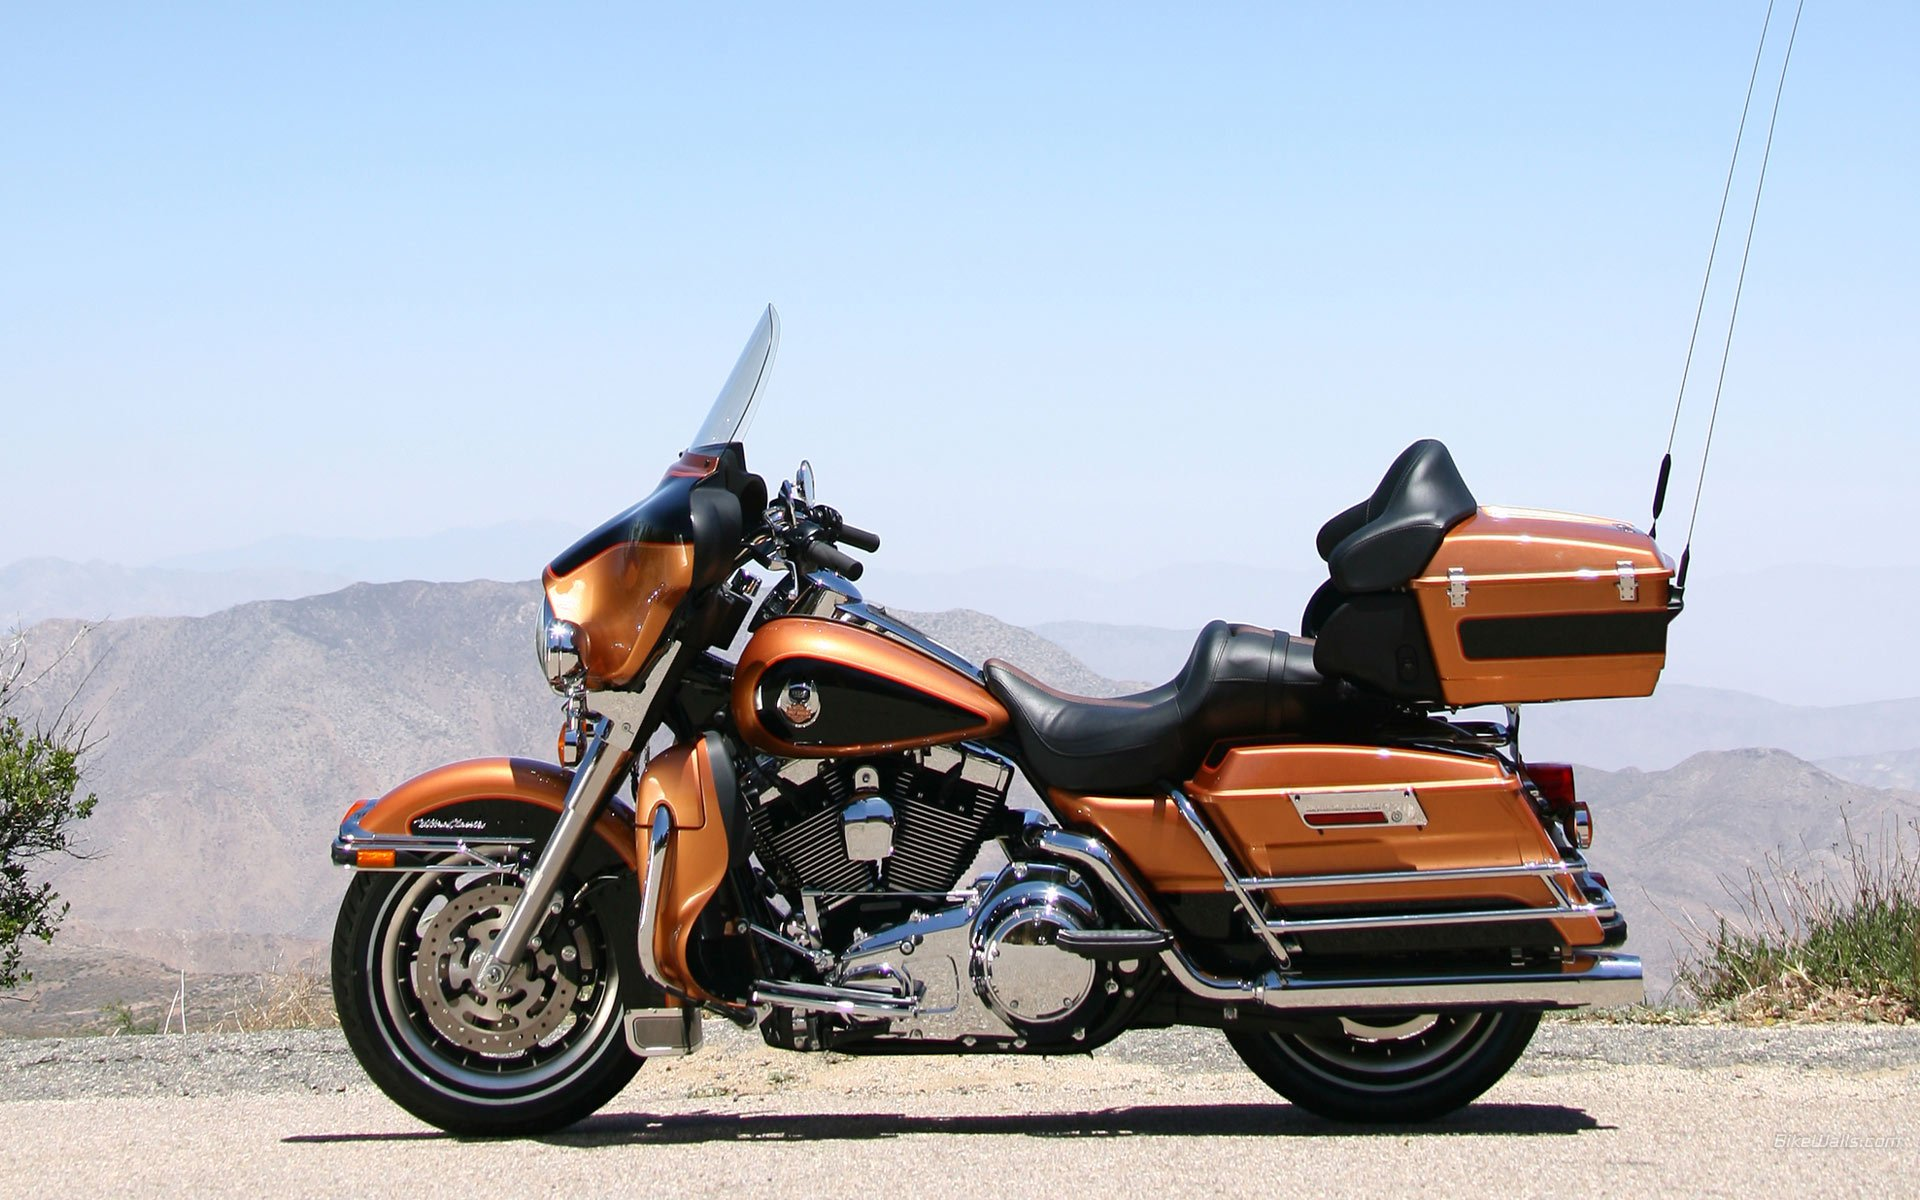 harley davidson road king wallpaper wallpapersafari. Black Bedroom Furniture Sets. Home Design Ideas